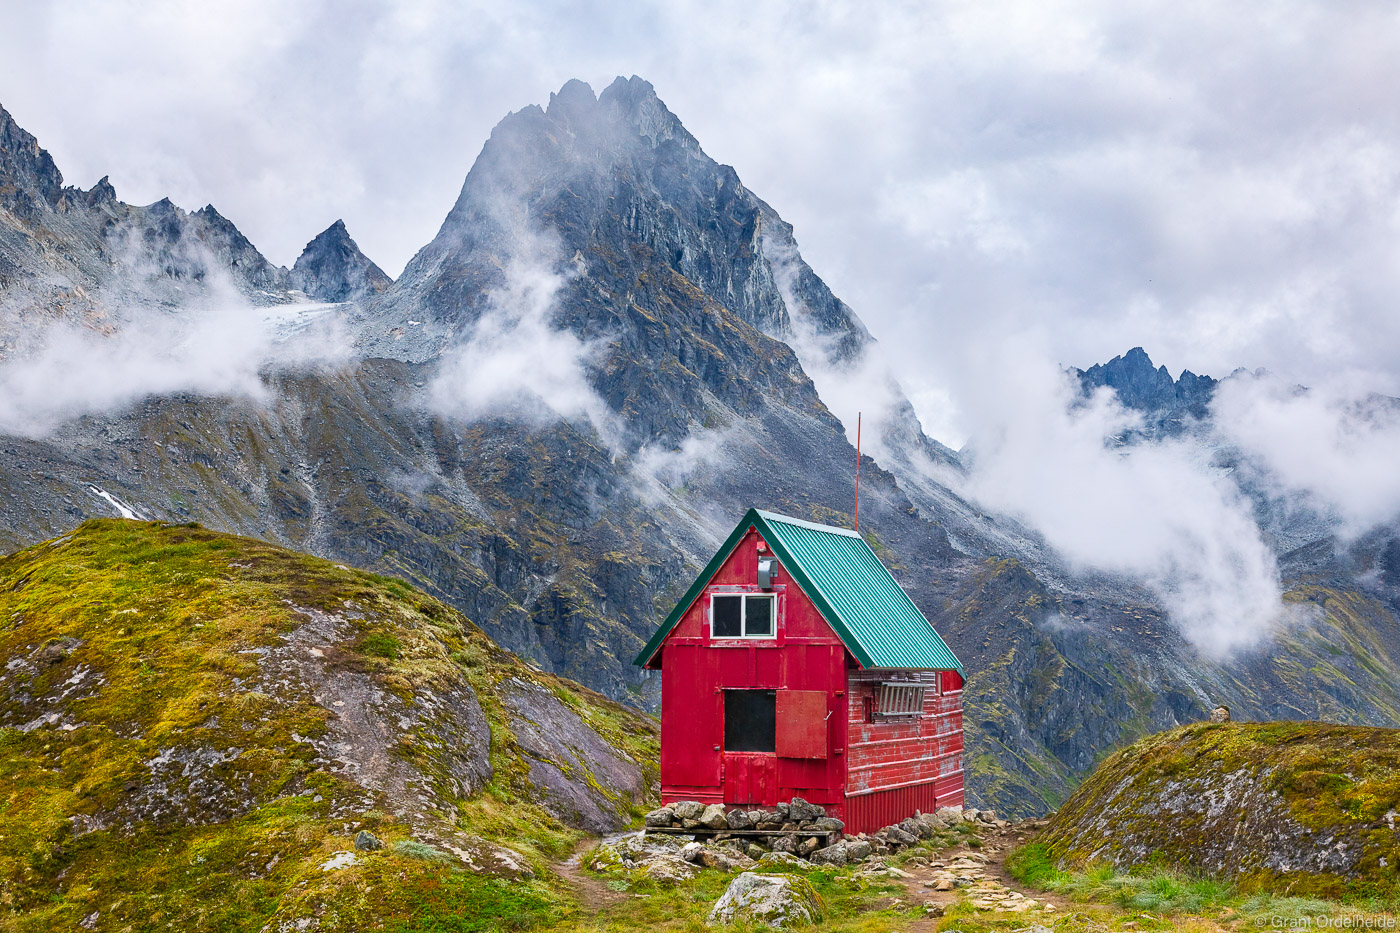 mint, hut, talkeetna, mountains, alaska, picturesque, backcountry, anchorage,